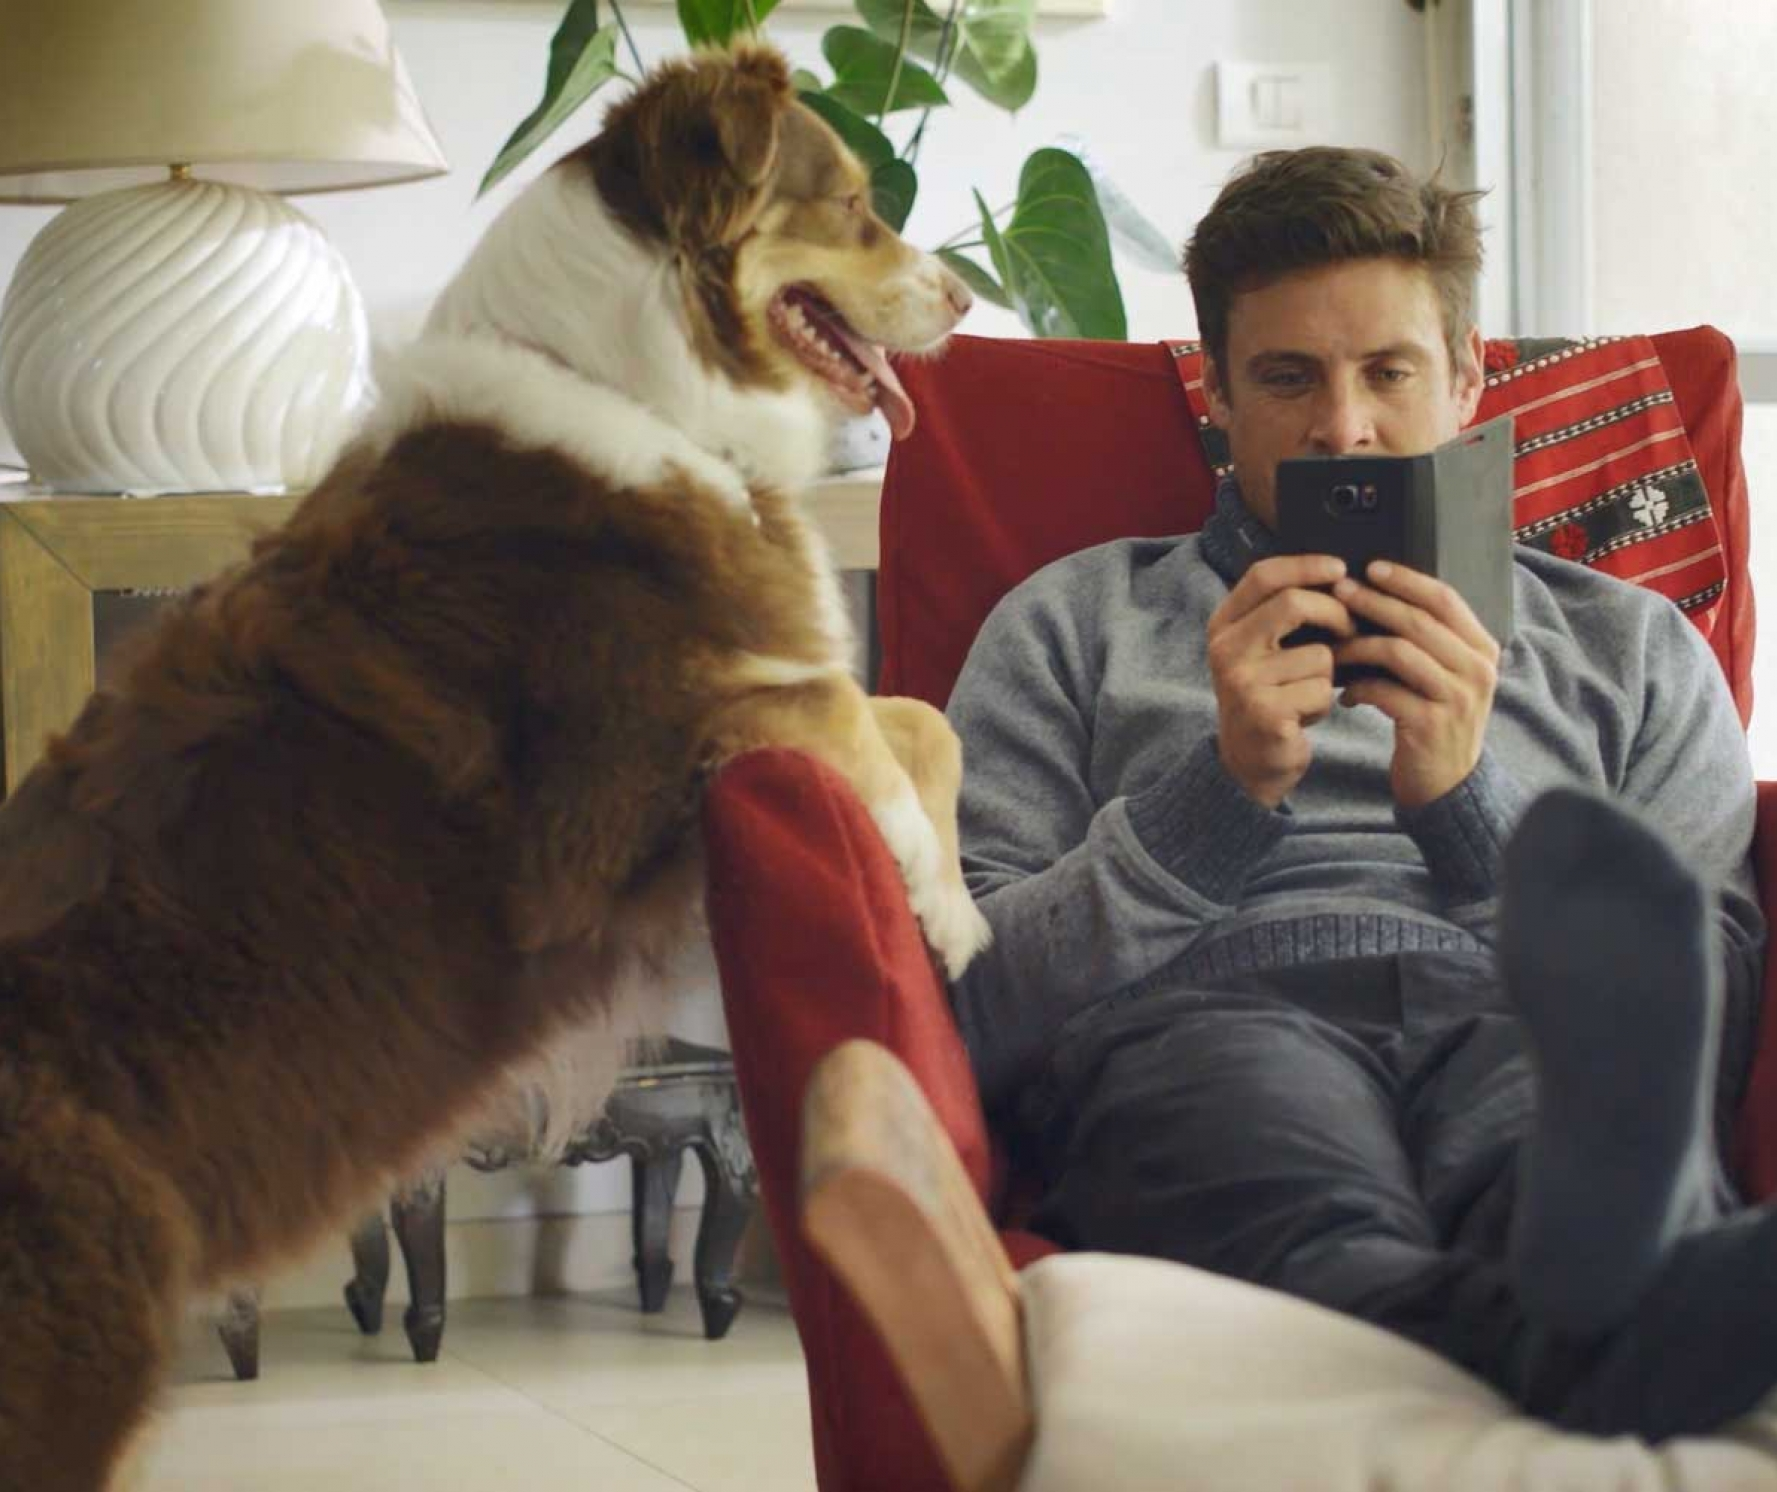 Man sitting in a chair buying online and a big dog